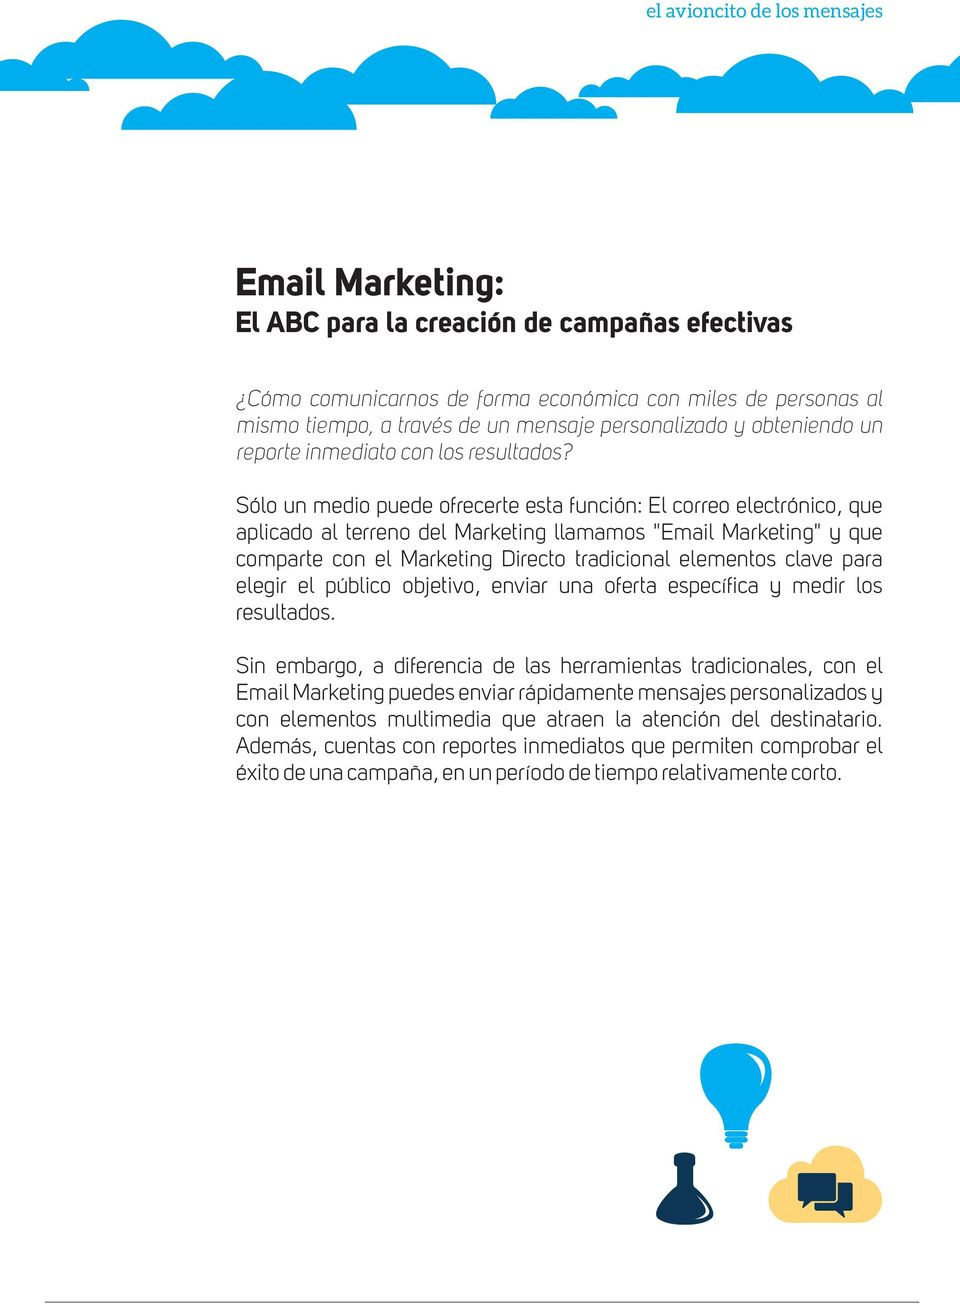 "Sólo un medio puede ofrecerte esta función: El correo electrónico, que aplicado al terreno del Marketing llamamos ""Email Marketing"" y que comparte con el Marketing Directo tradicional elementos clave"